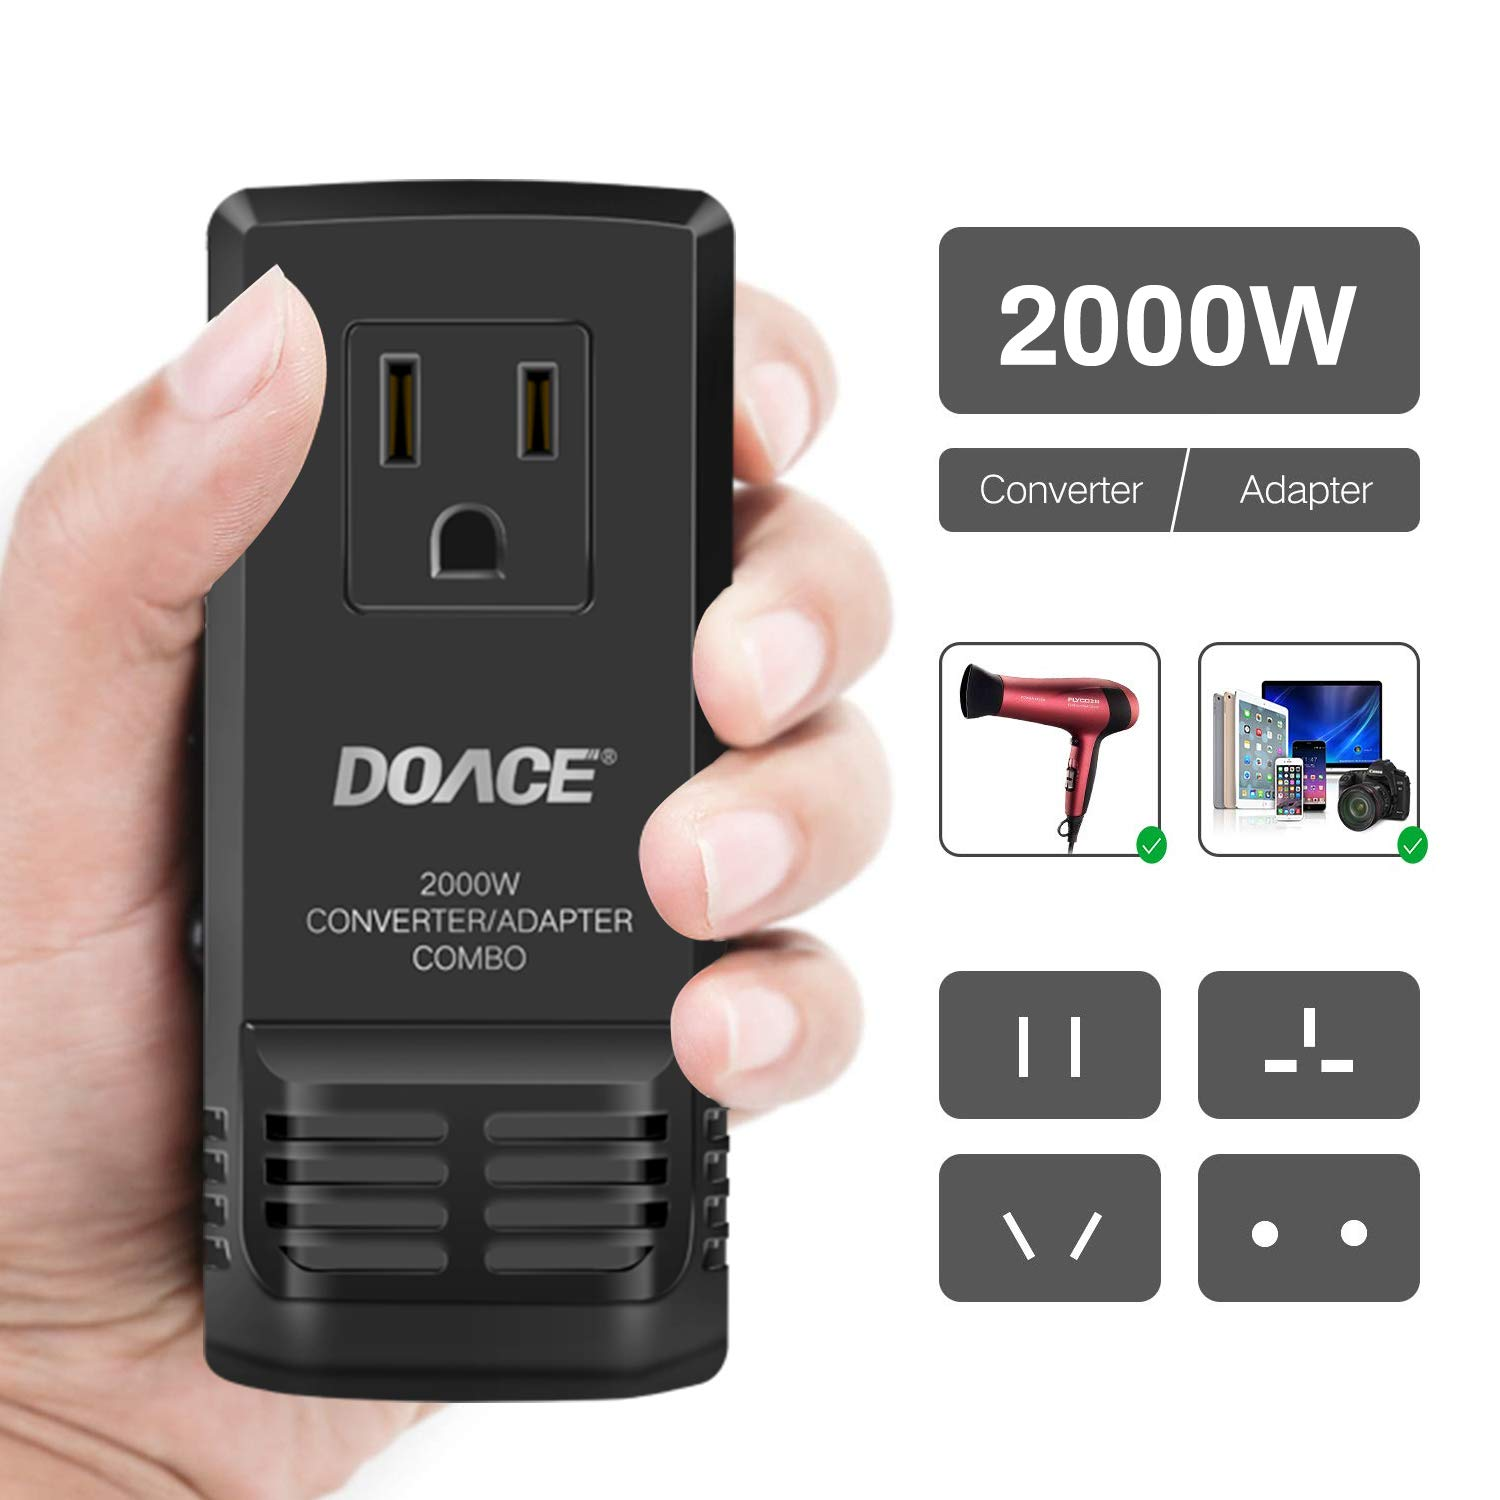 DOACE C8 2000W Travel Voltage Converter 220V to 110V for Hair Dryer Steam Iron 8A Power Adapter with